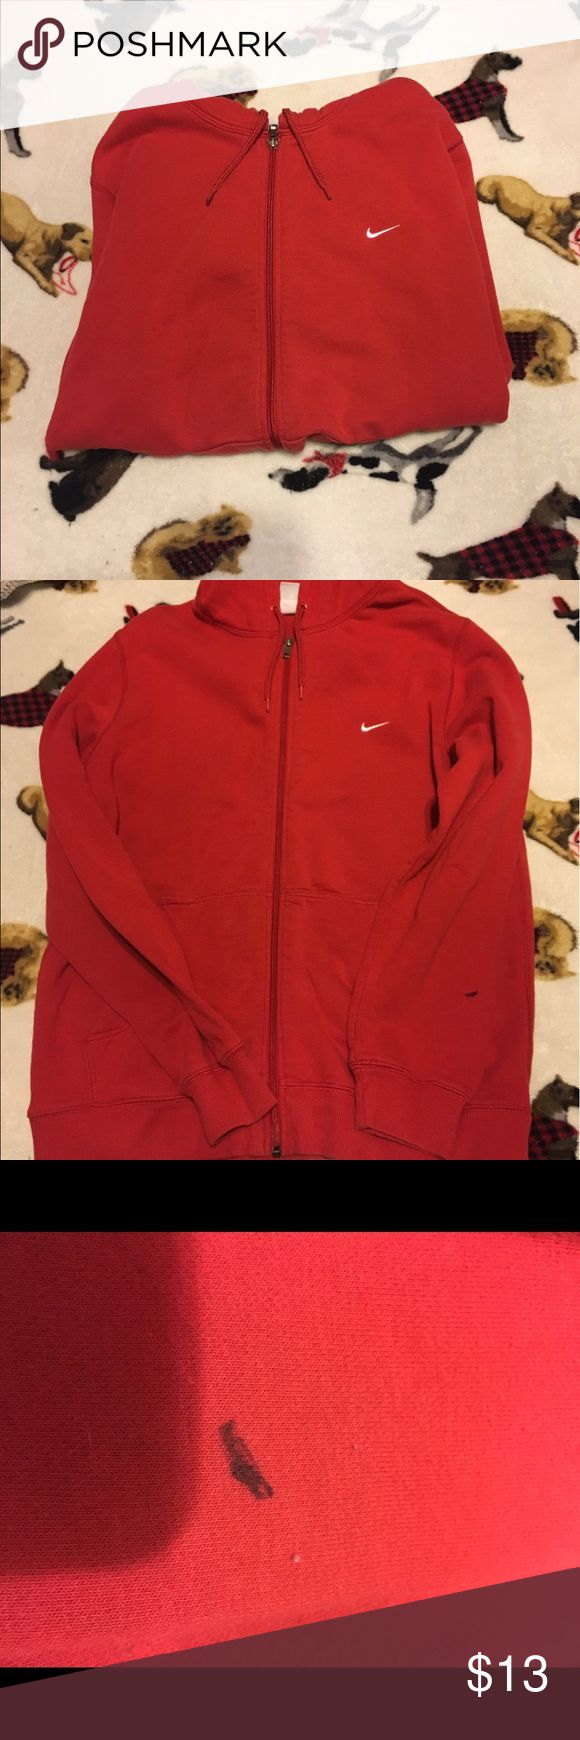 Red Nike zip up hoodie. This hoodie is in very good condition other than having a sharpie mark on the sleeve but I'm sure somebody with some good laundry skills can get it out. Comes from a smoke free home but pet friendly. No holes rips or tears. Nike Jackets & Coats